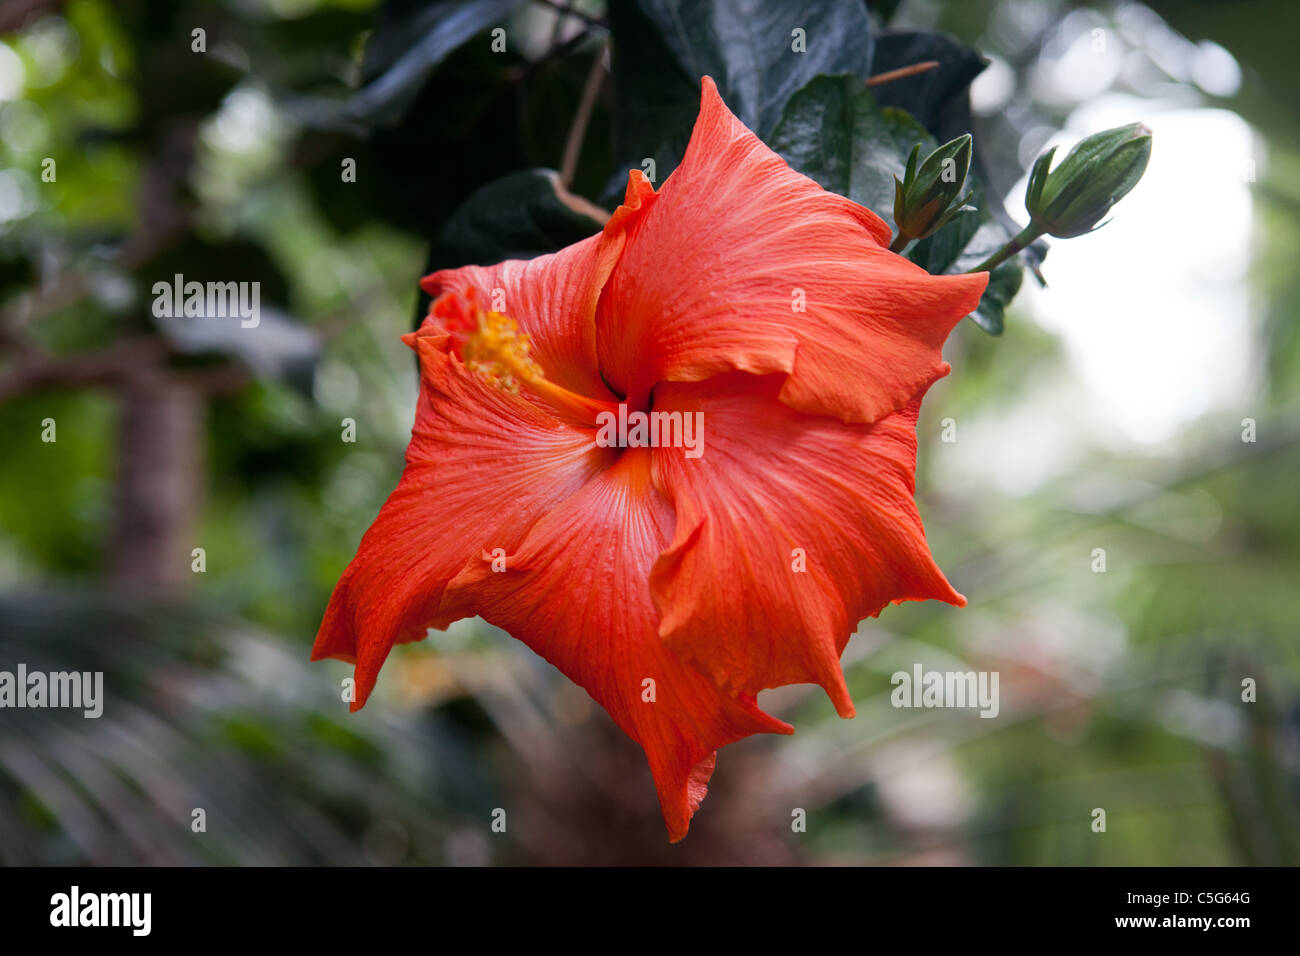 The Red Hibiscus Flower - Stock Image